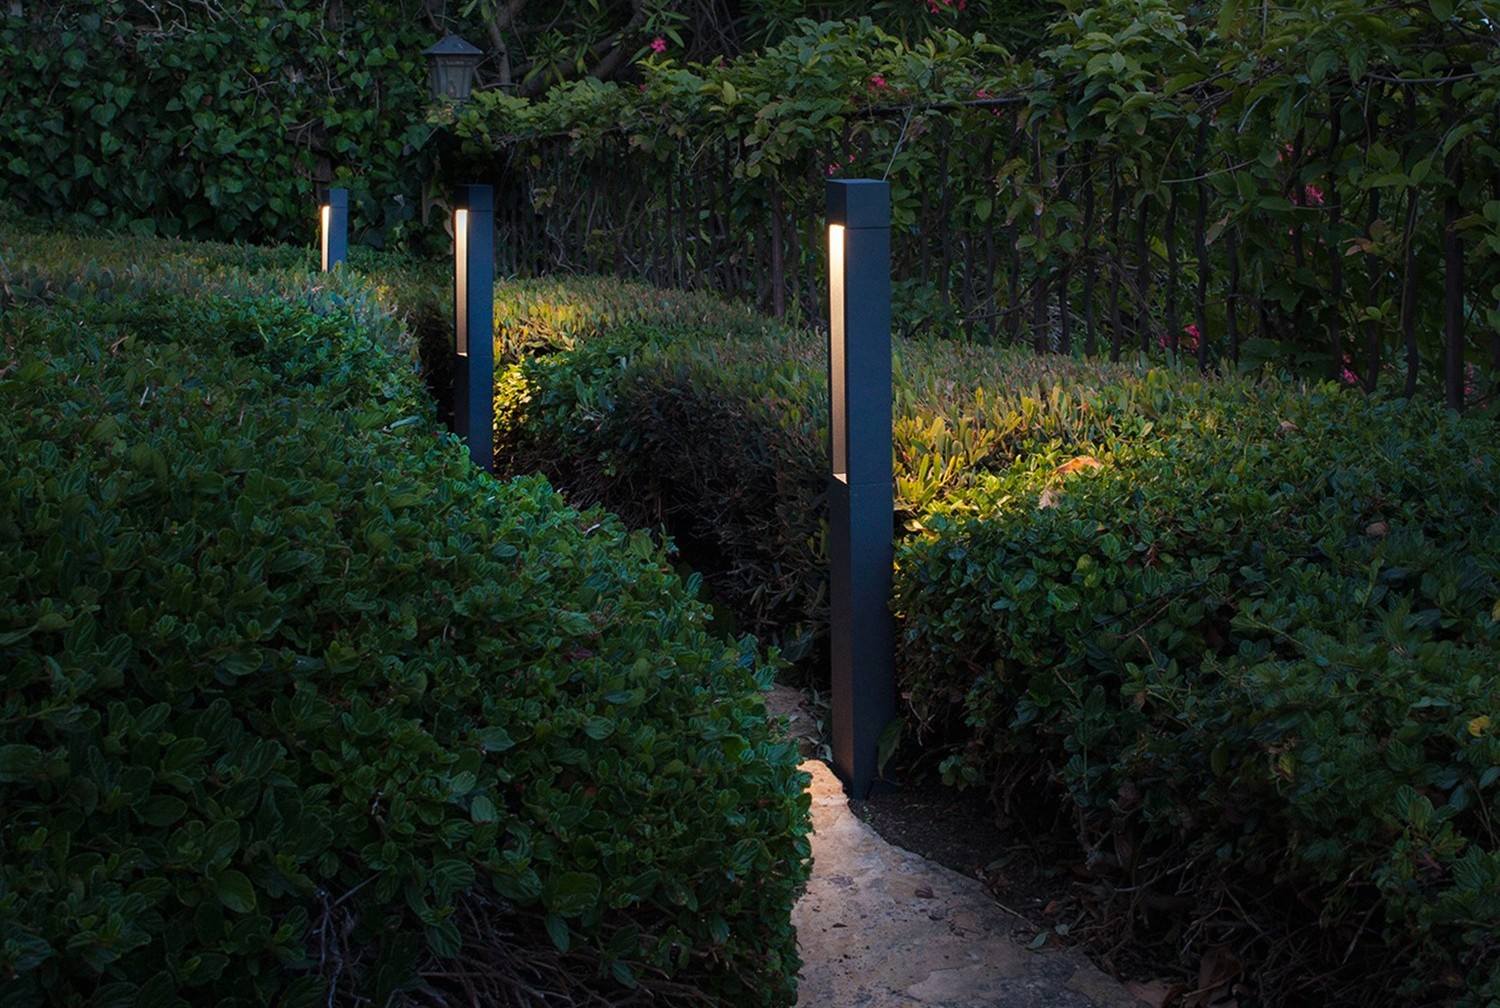 10 Lights to Amp Up Night Time Curb Appeal